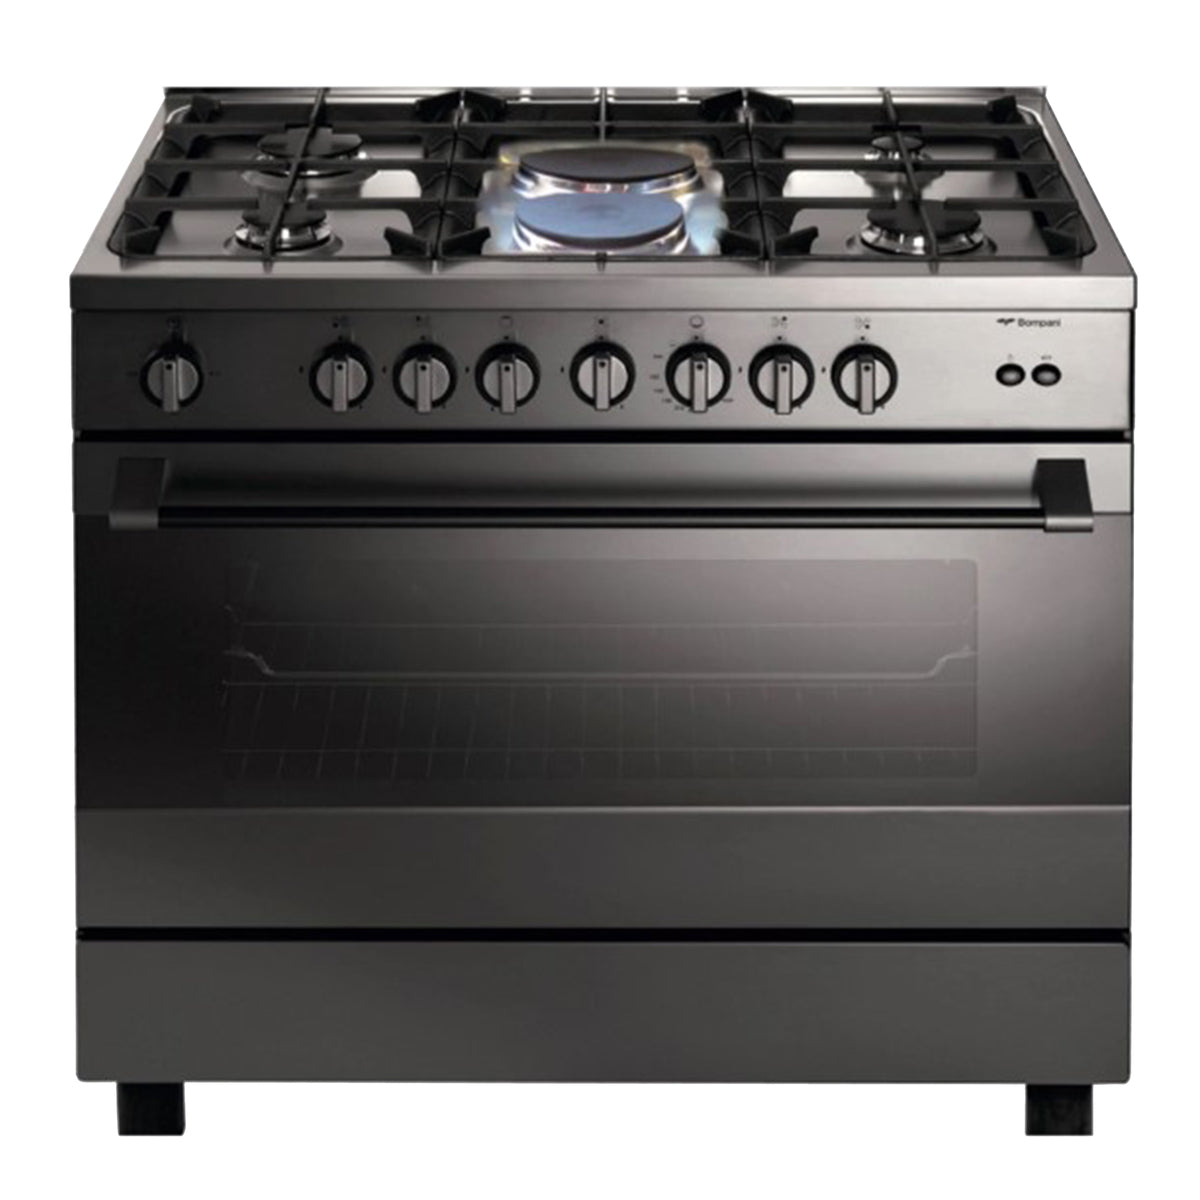 Bompani 4 Gas Burner 90x60cm Cooker with 2 Electric Plates - BO683MK/L